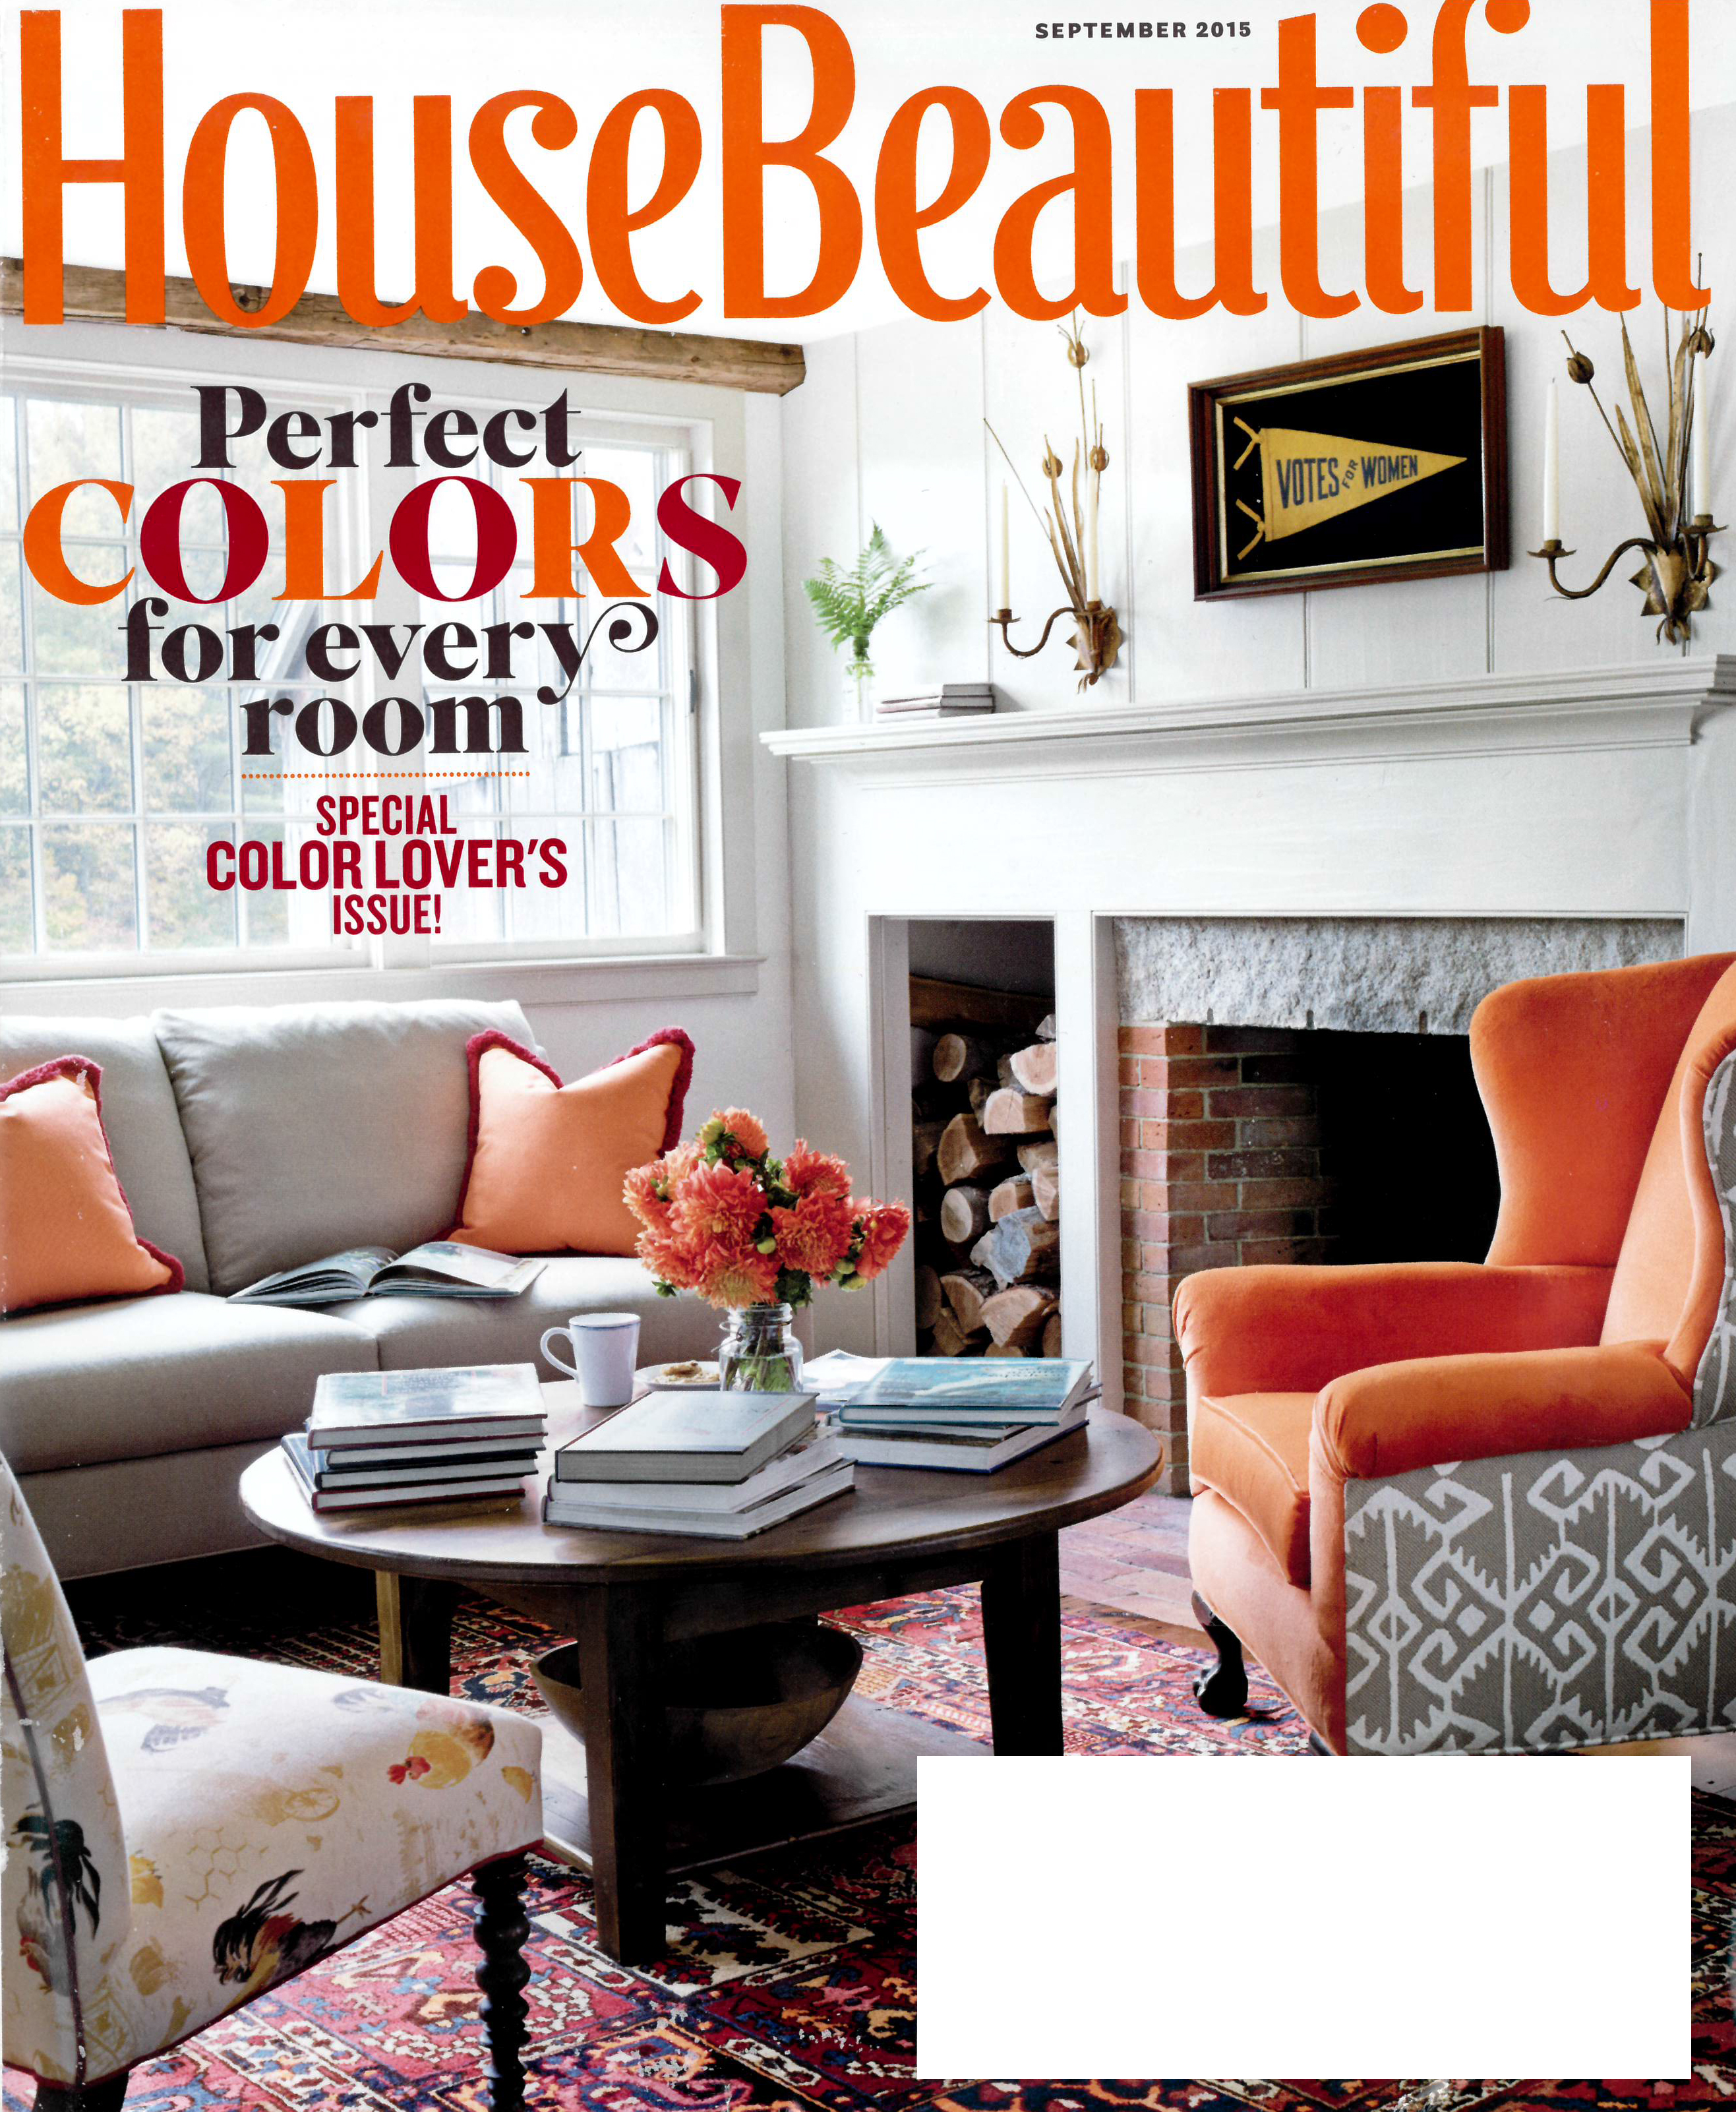 Live Edge Countertop in House Beautiful Magazine